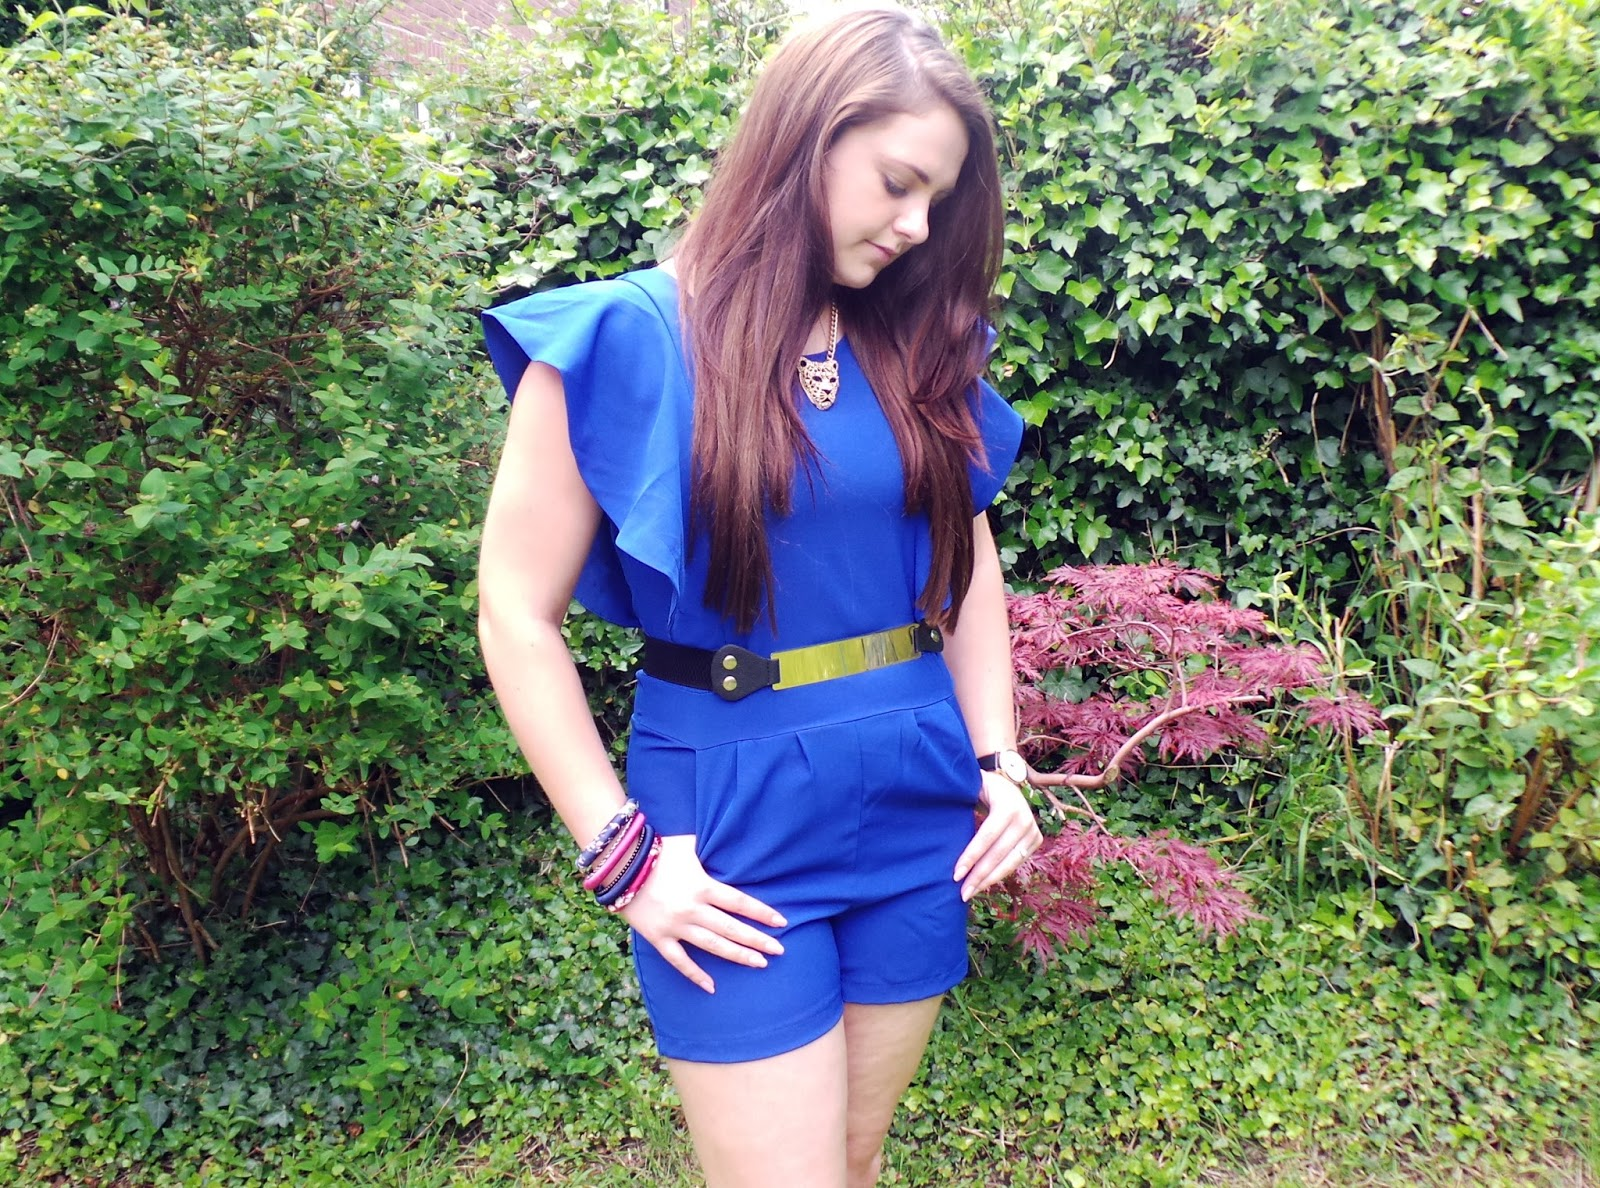 the cityrack, the cityrack blue belted playsuit, fashion blog, fashion blogger, uk fashion blog, uk fashion blogger, uk style blog, uk style blogger, night out, playsuit, accessories, fashion accessories blog, laurasallmadeup,